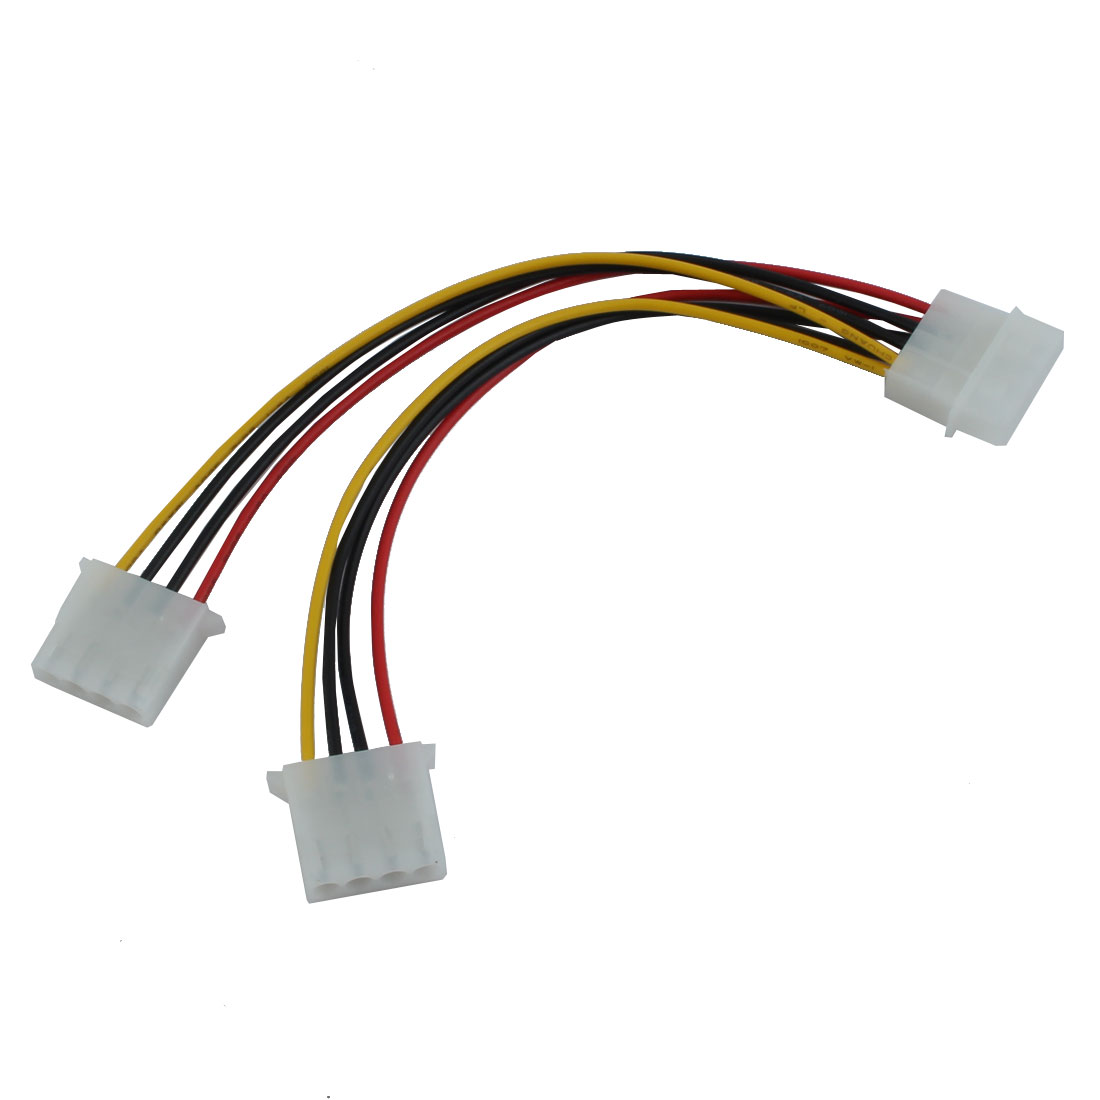 8 inch 1 to 2 Way 4-Pin IDE Y Extension Power Cable